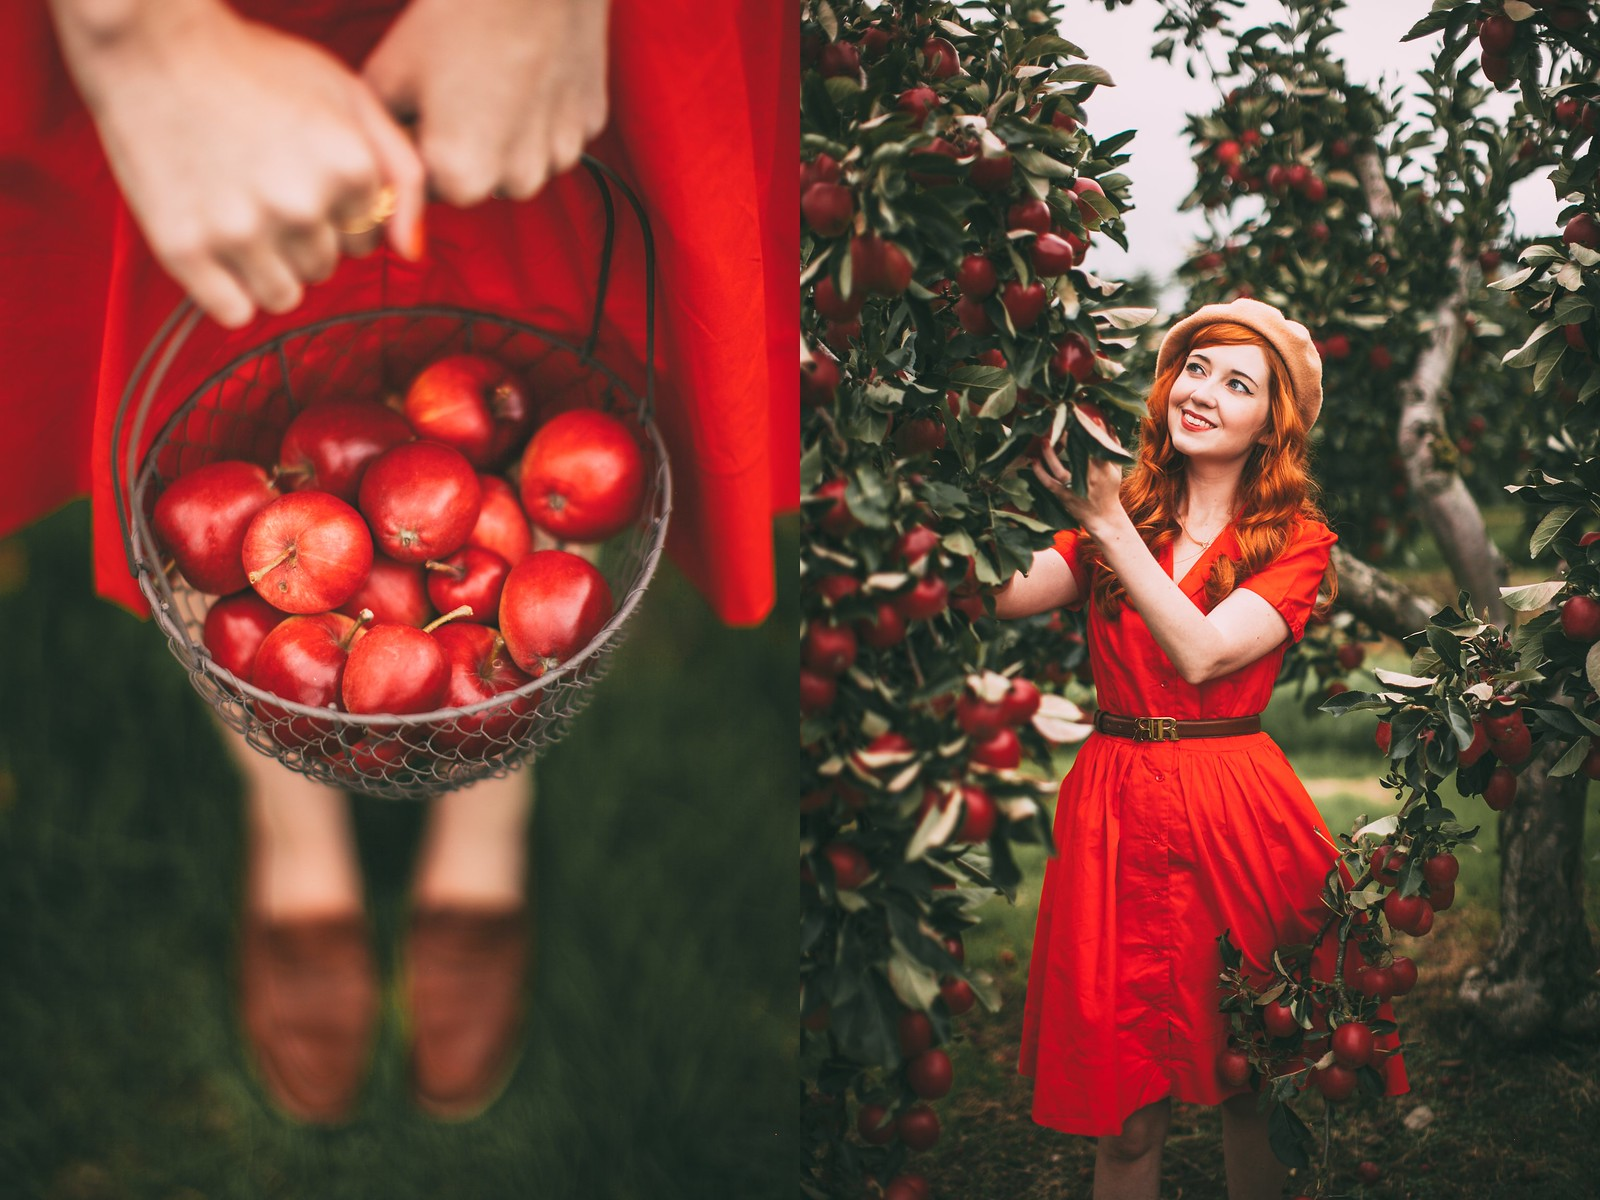 red apples-17-side